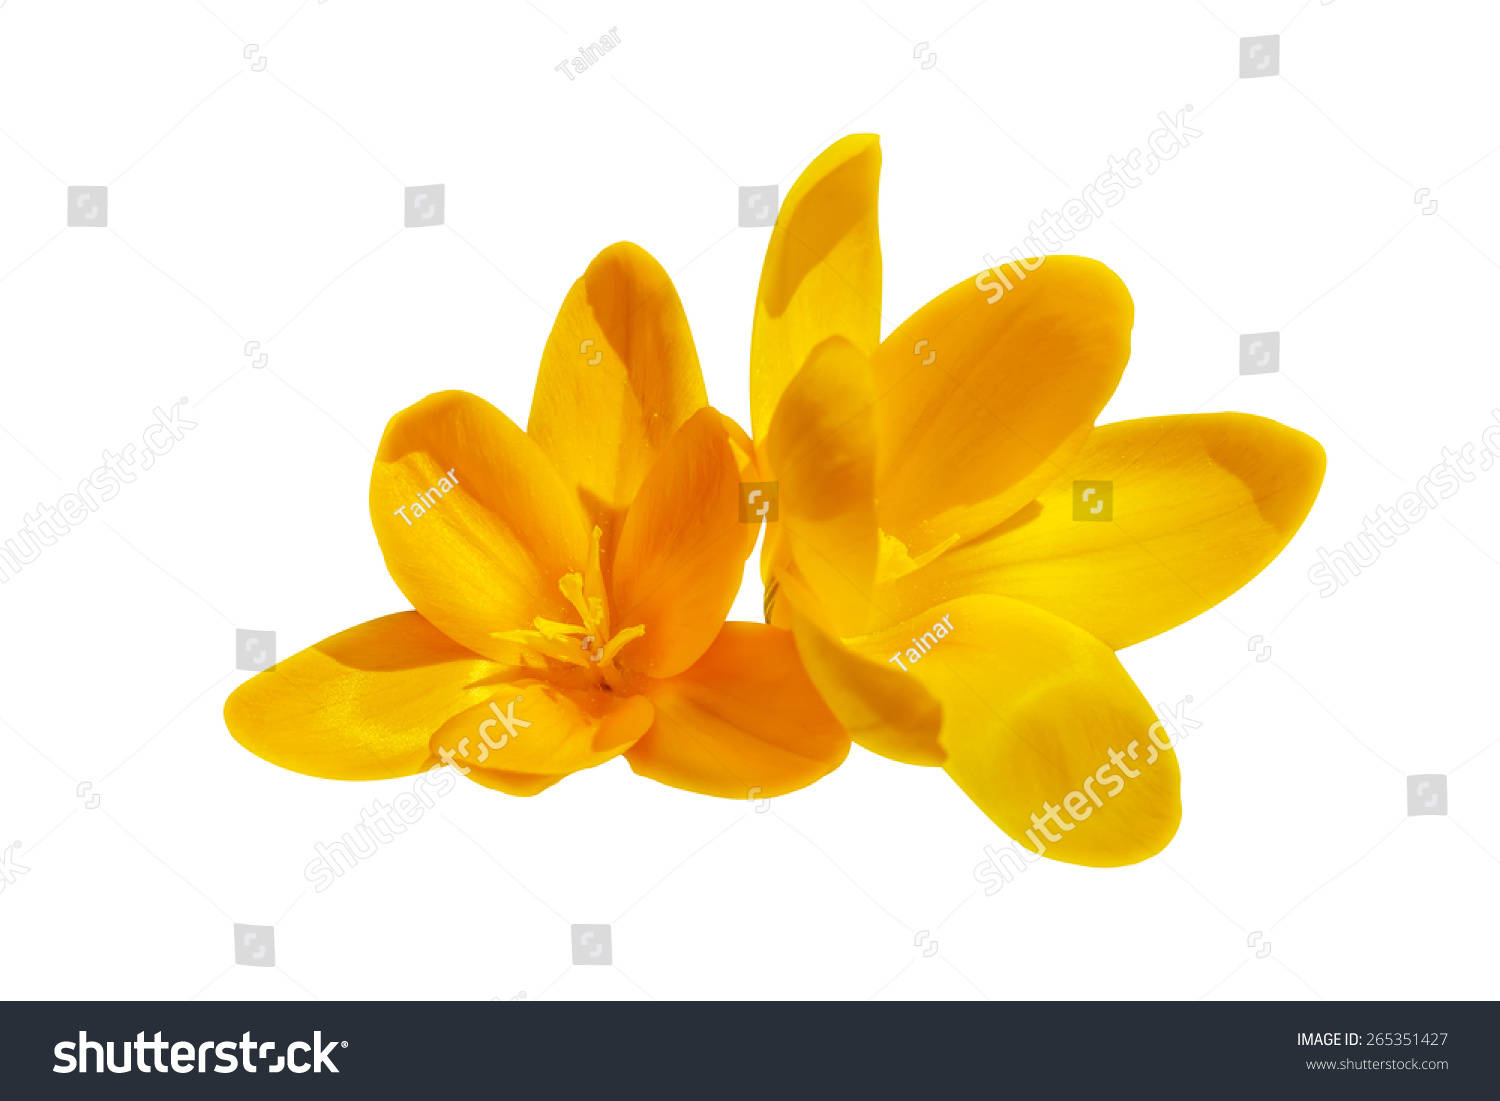 Two Yellow Crocus Flowers Isolated On The White Background Ez Canvas